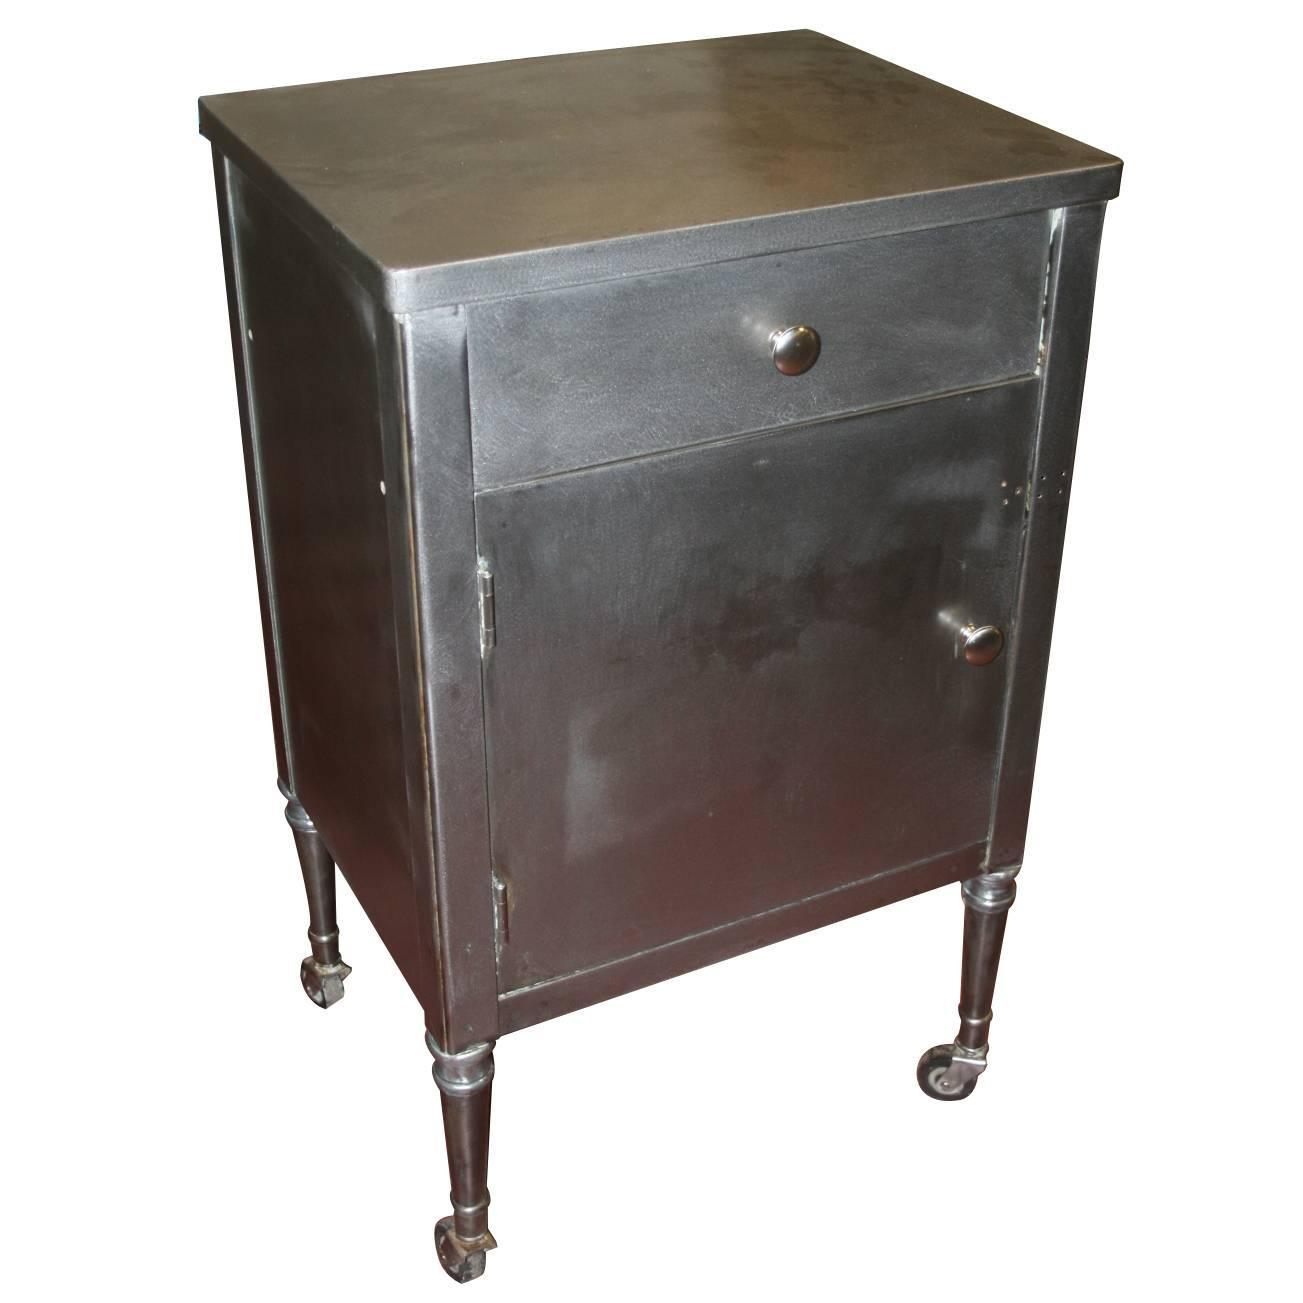 Great 1930s Steel Industrial Cabinet Nightstand For Sale at 1stdibs